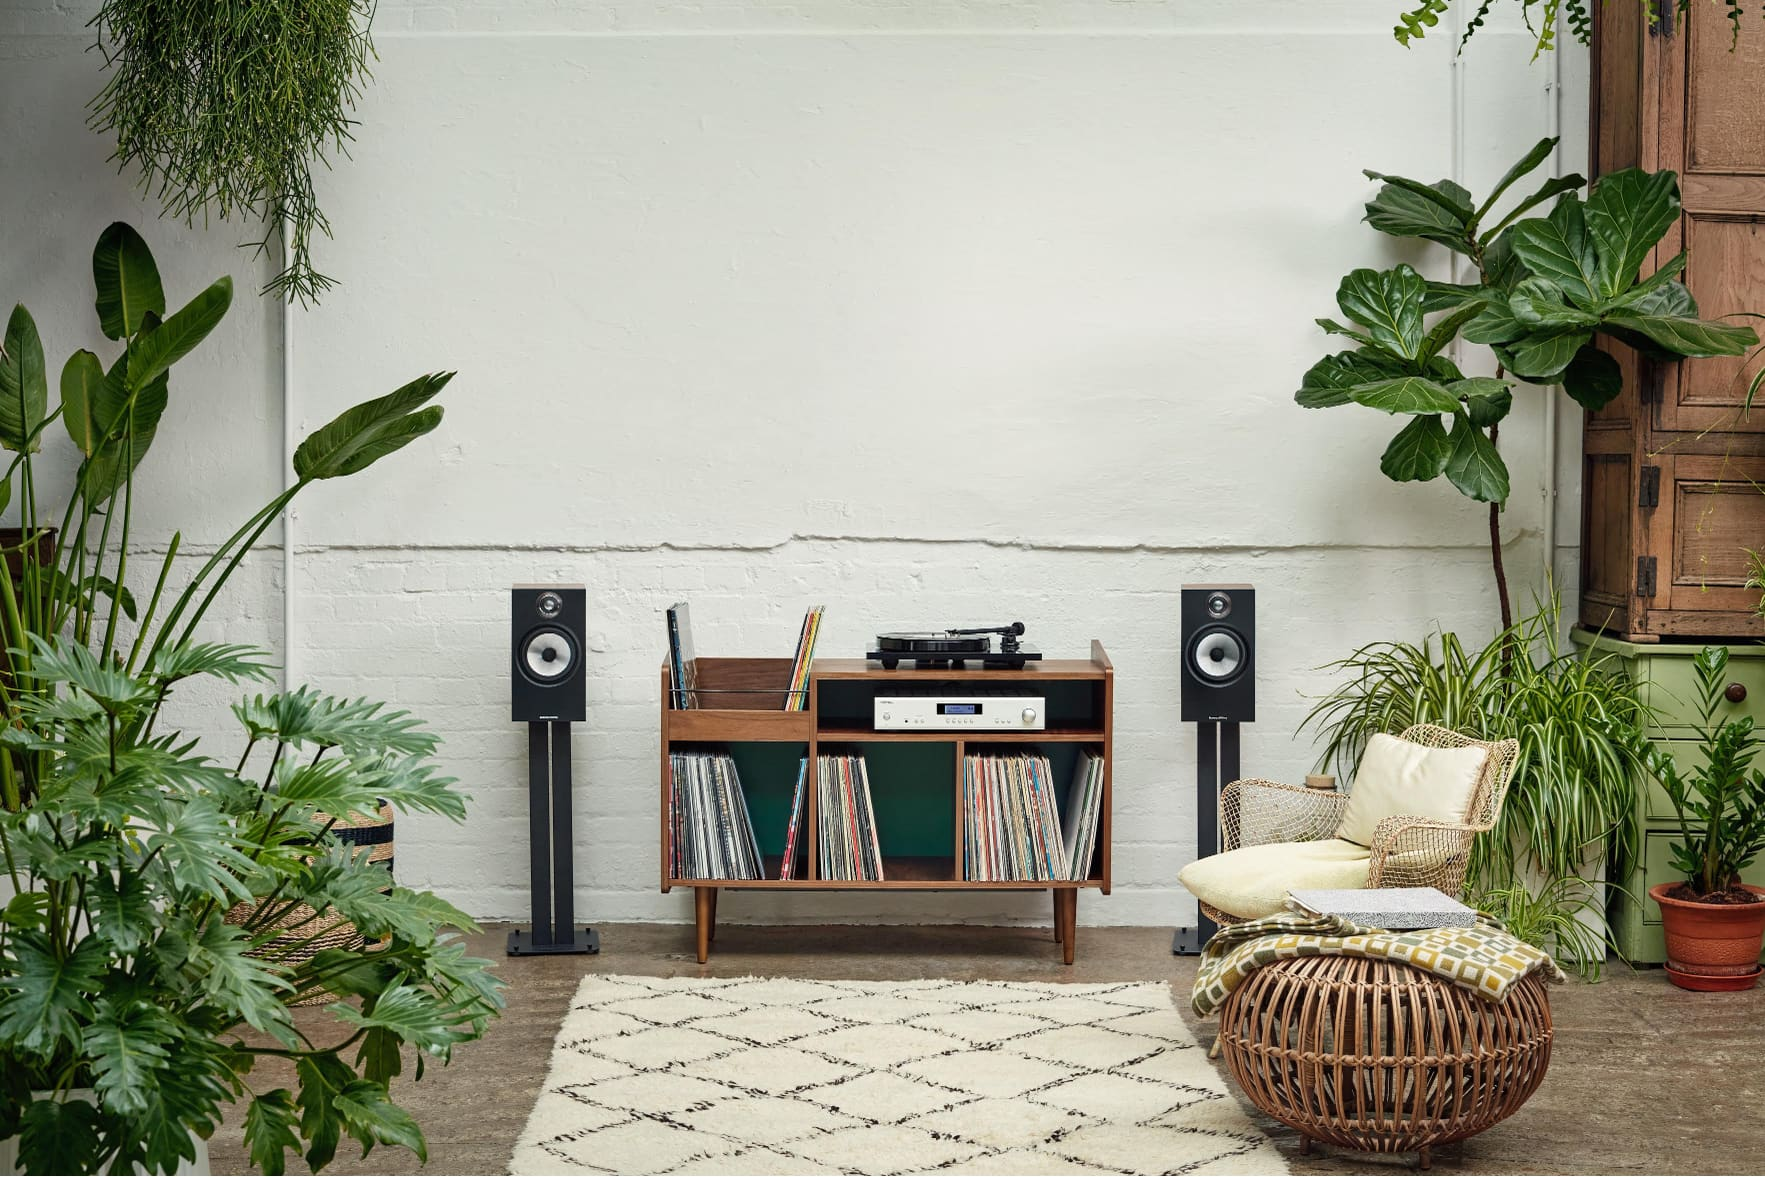 Bowers and Wilkons surround sound system high end audio expensive sound system